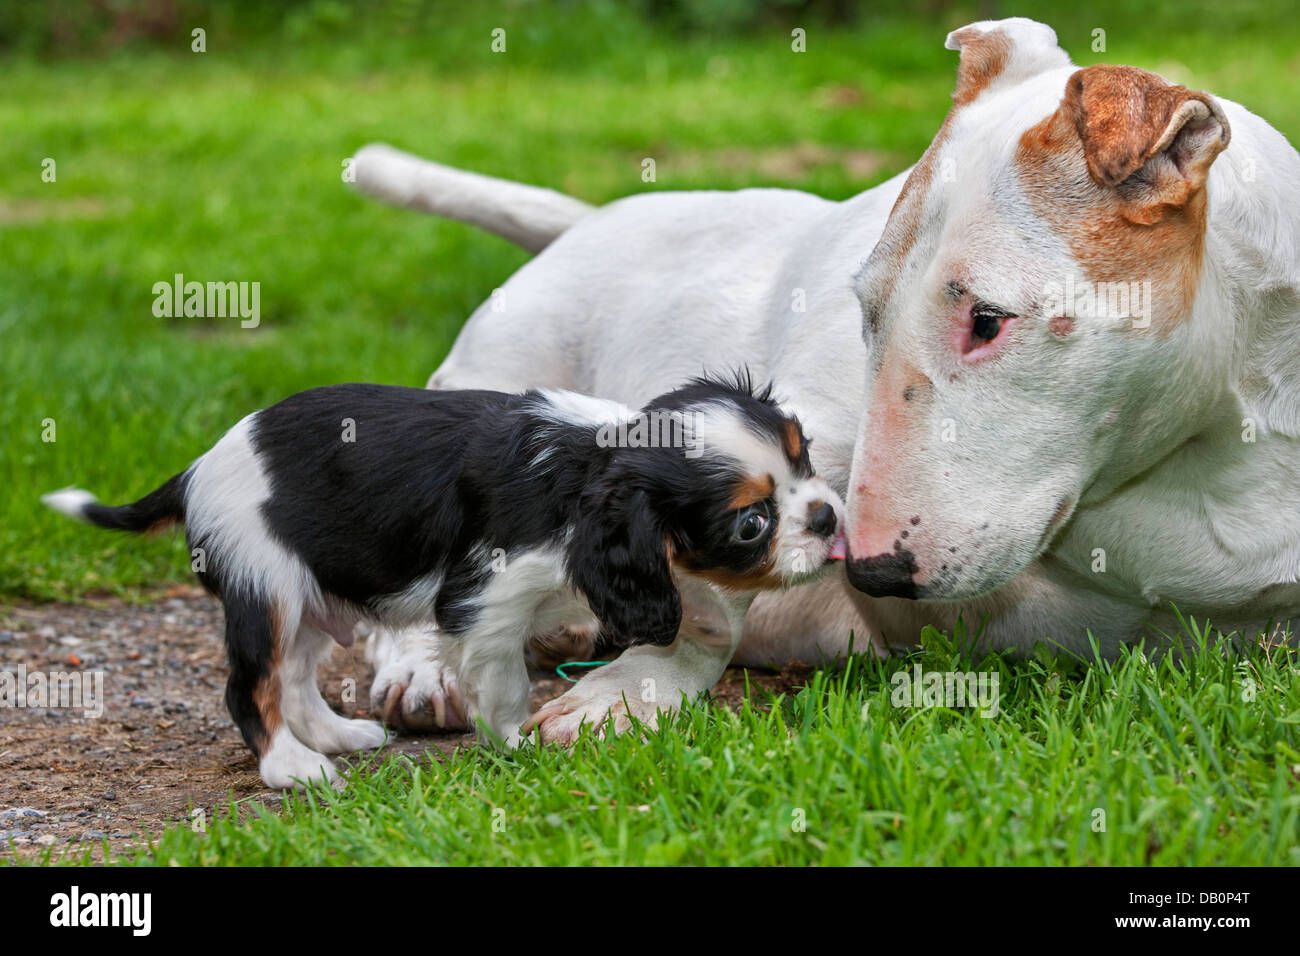 Cute Cavalier King Charles Spaniel Puppy Greeting Bull Terrier Dog In Stock Photo Alamy